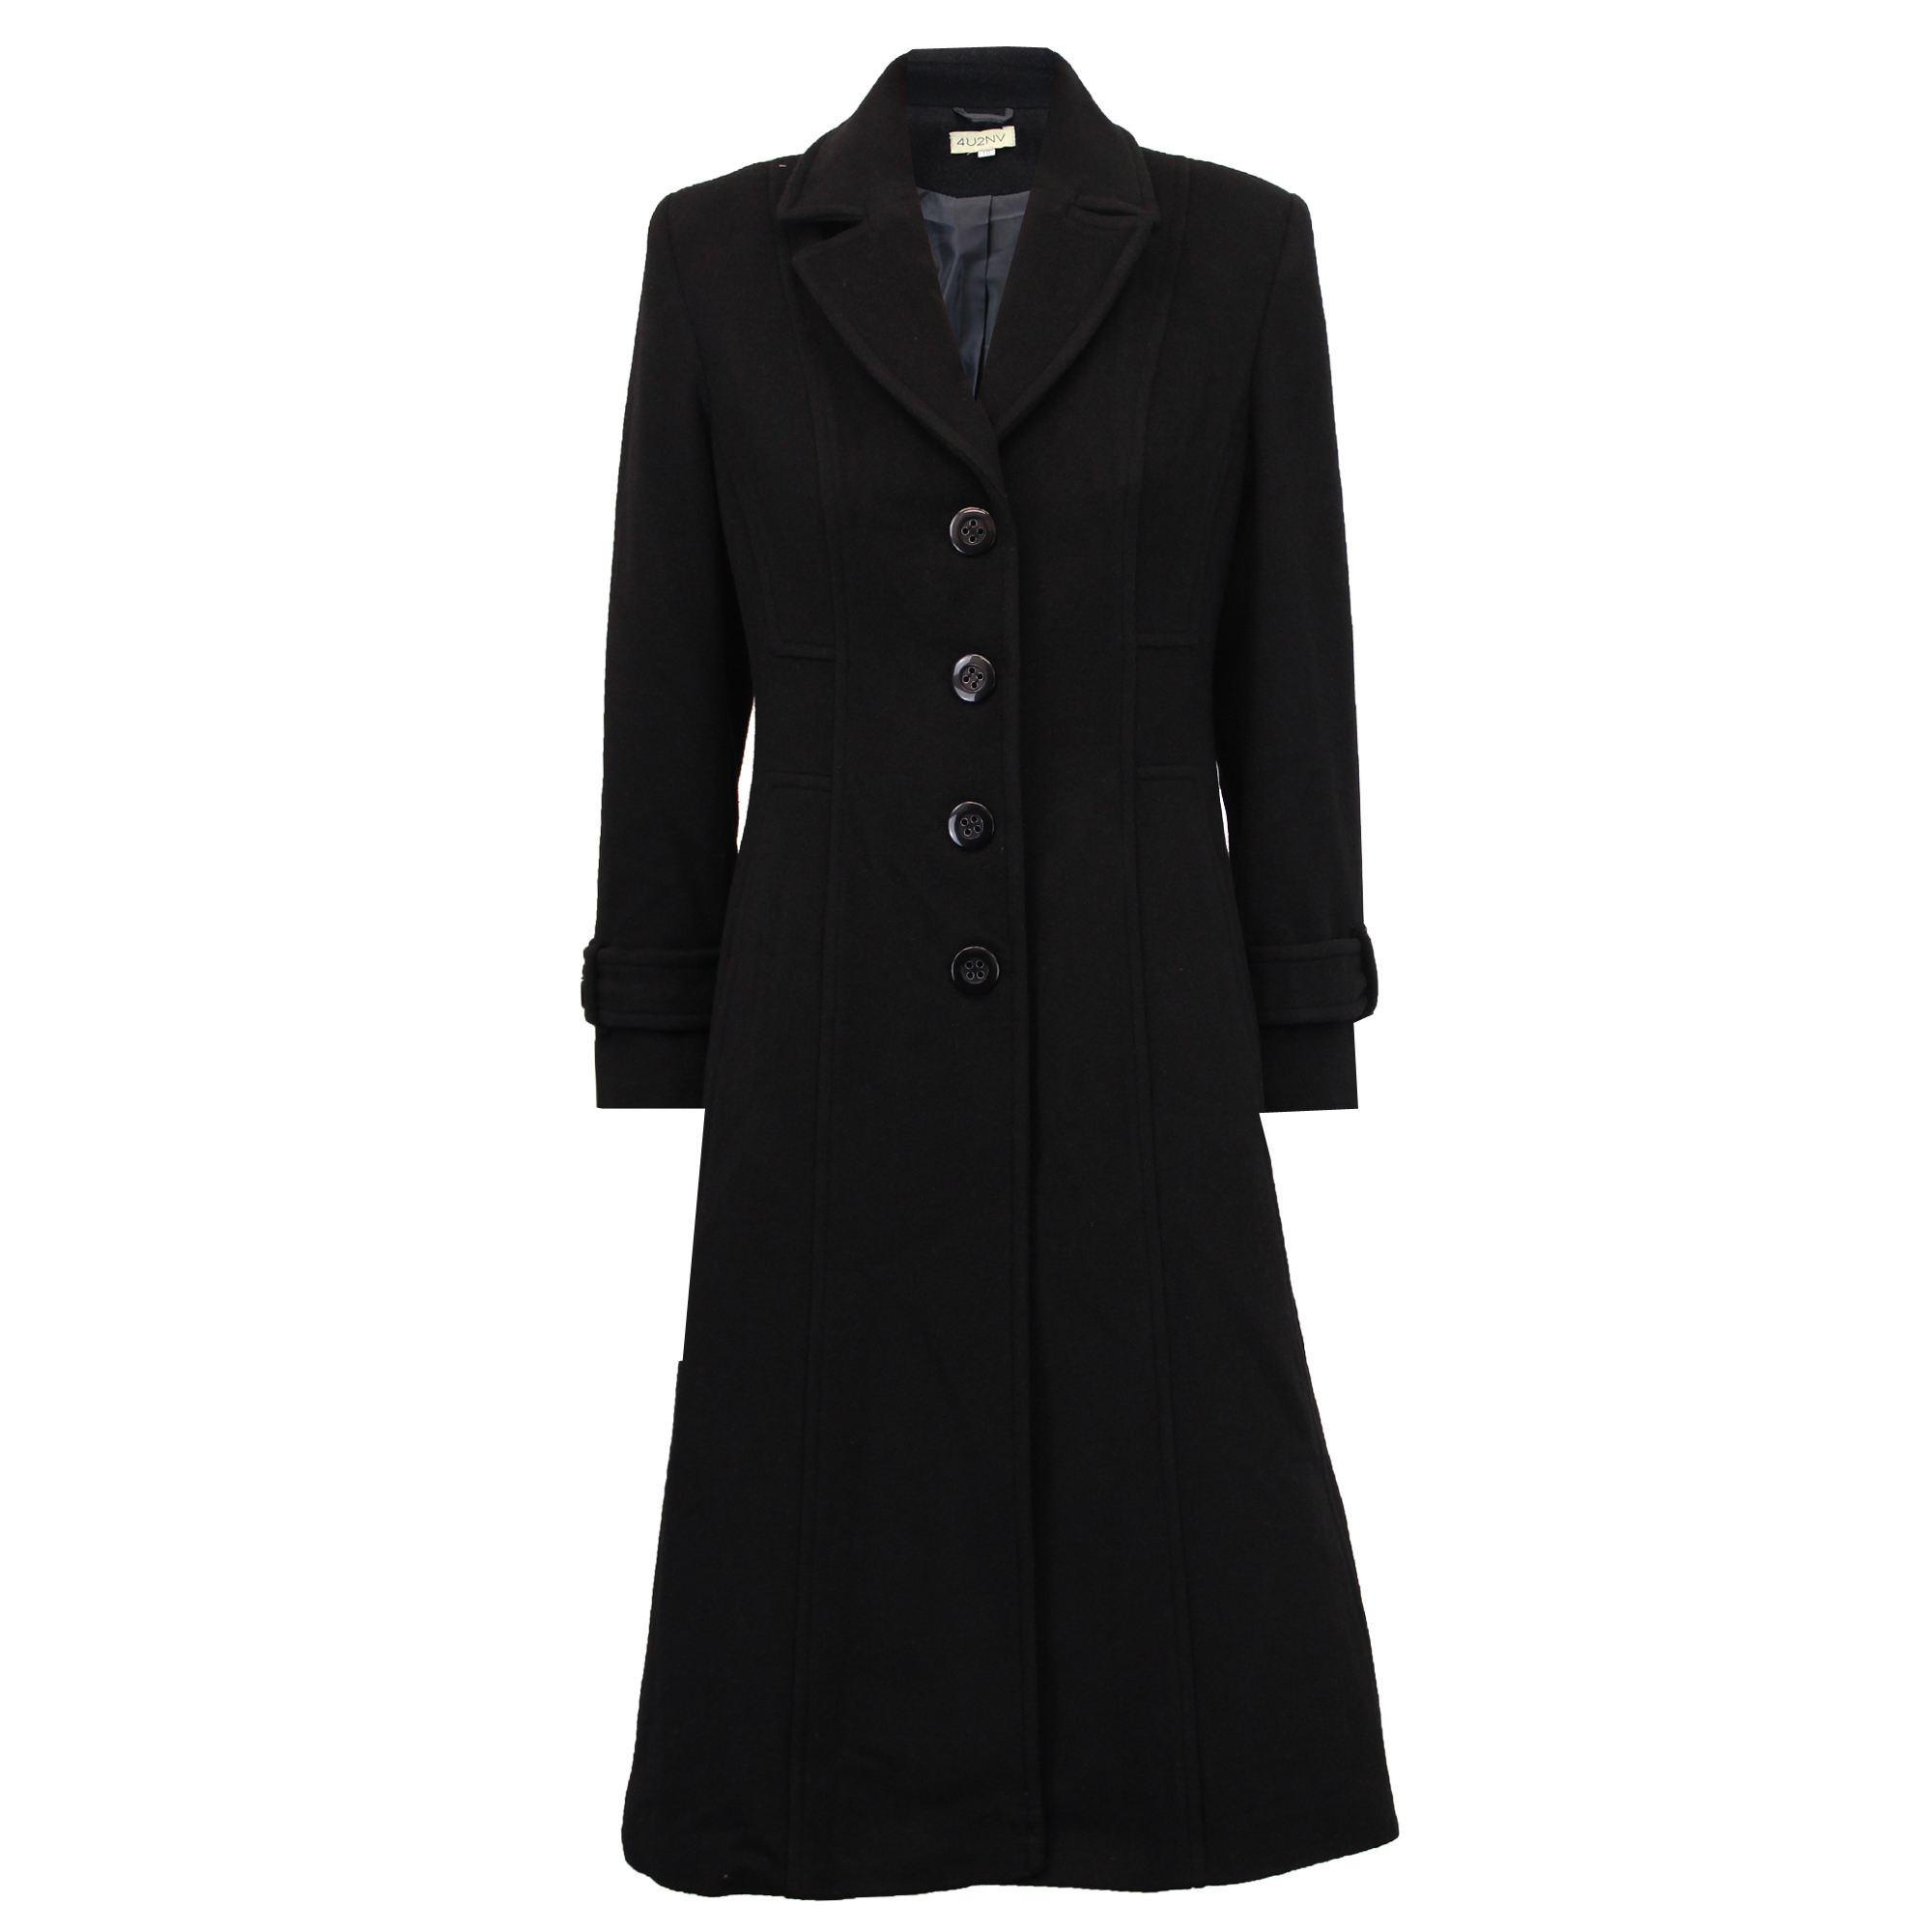 Ladies-Wool-Cashmere-Coat-Women-Jacket-Outerwear-Trench-Overcoat-Winter-Lined thumbnail 13